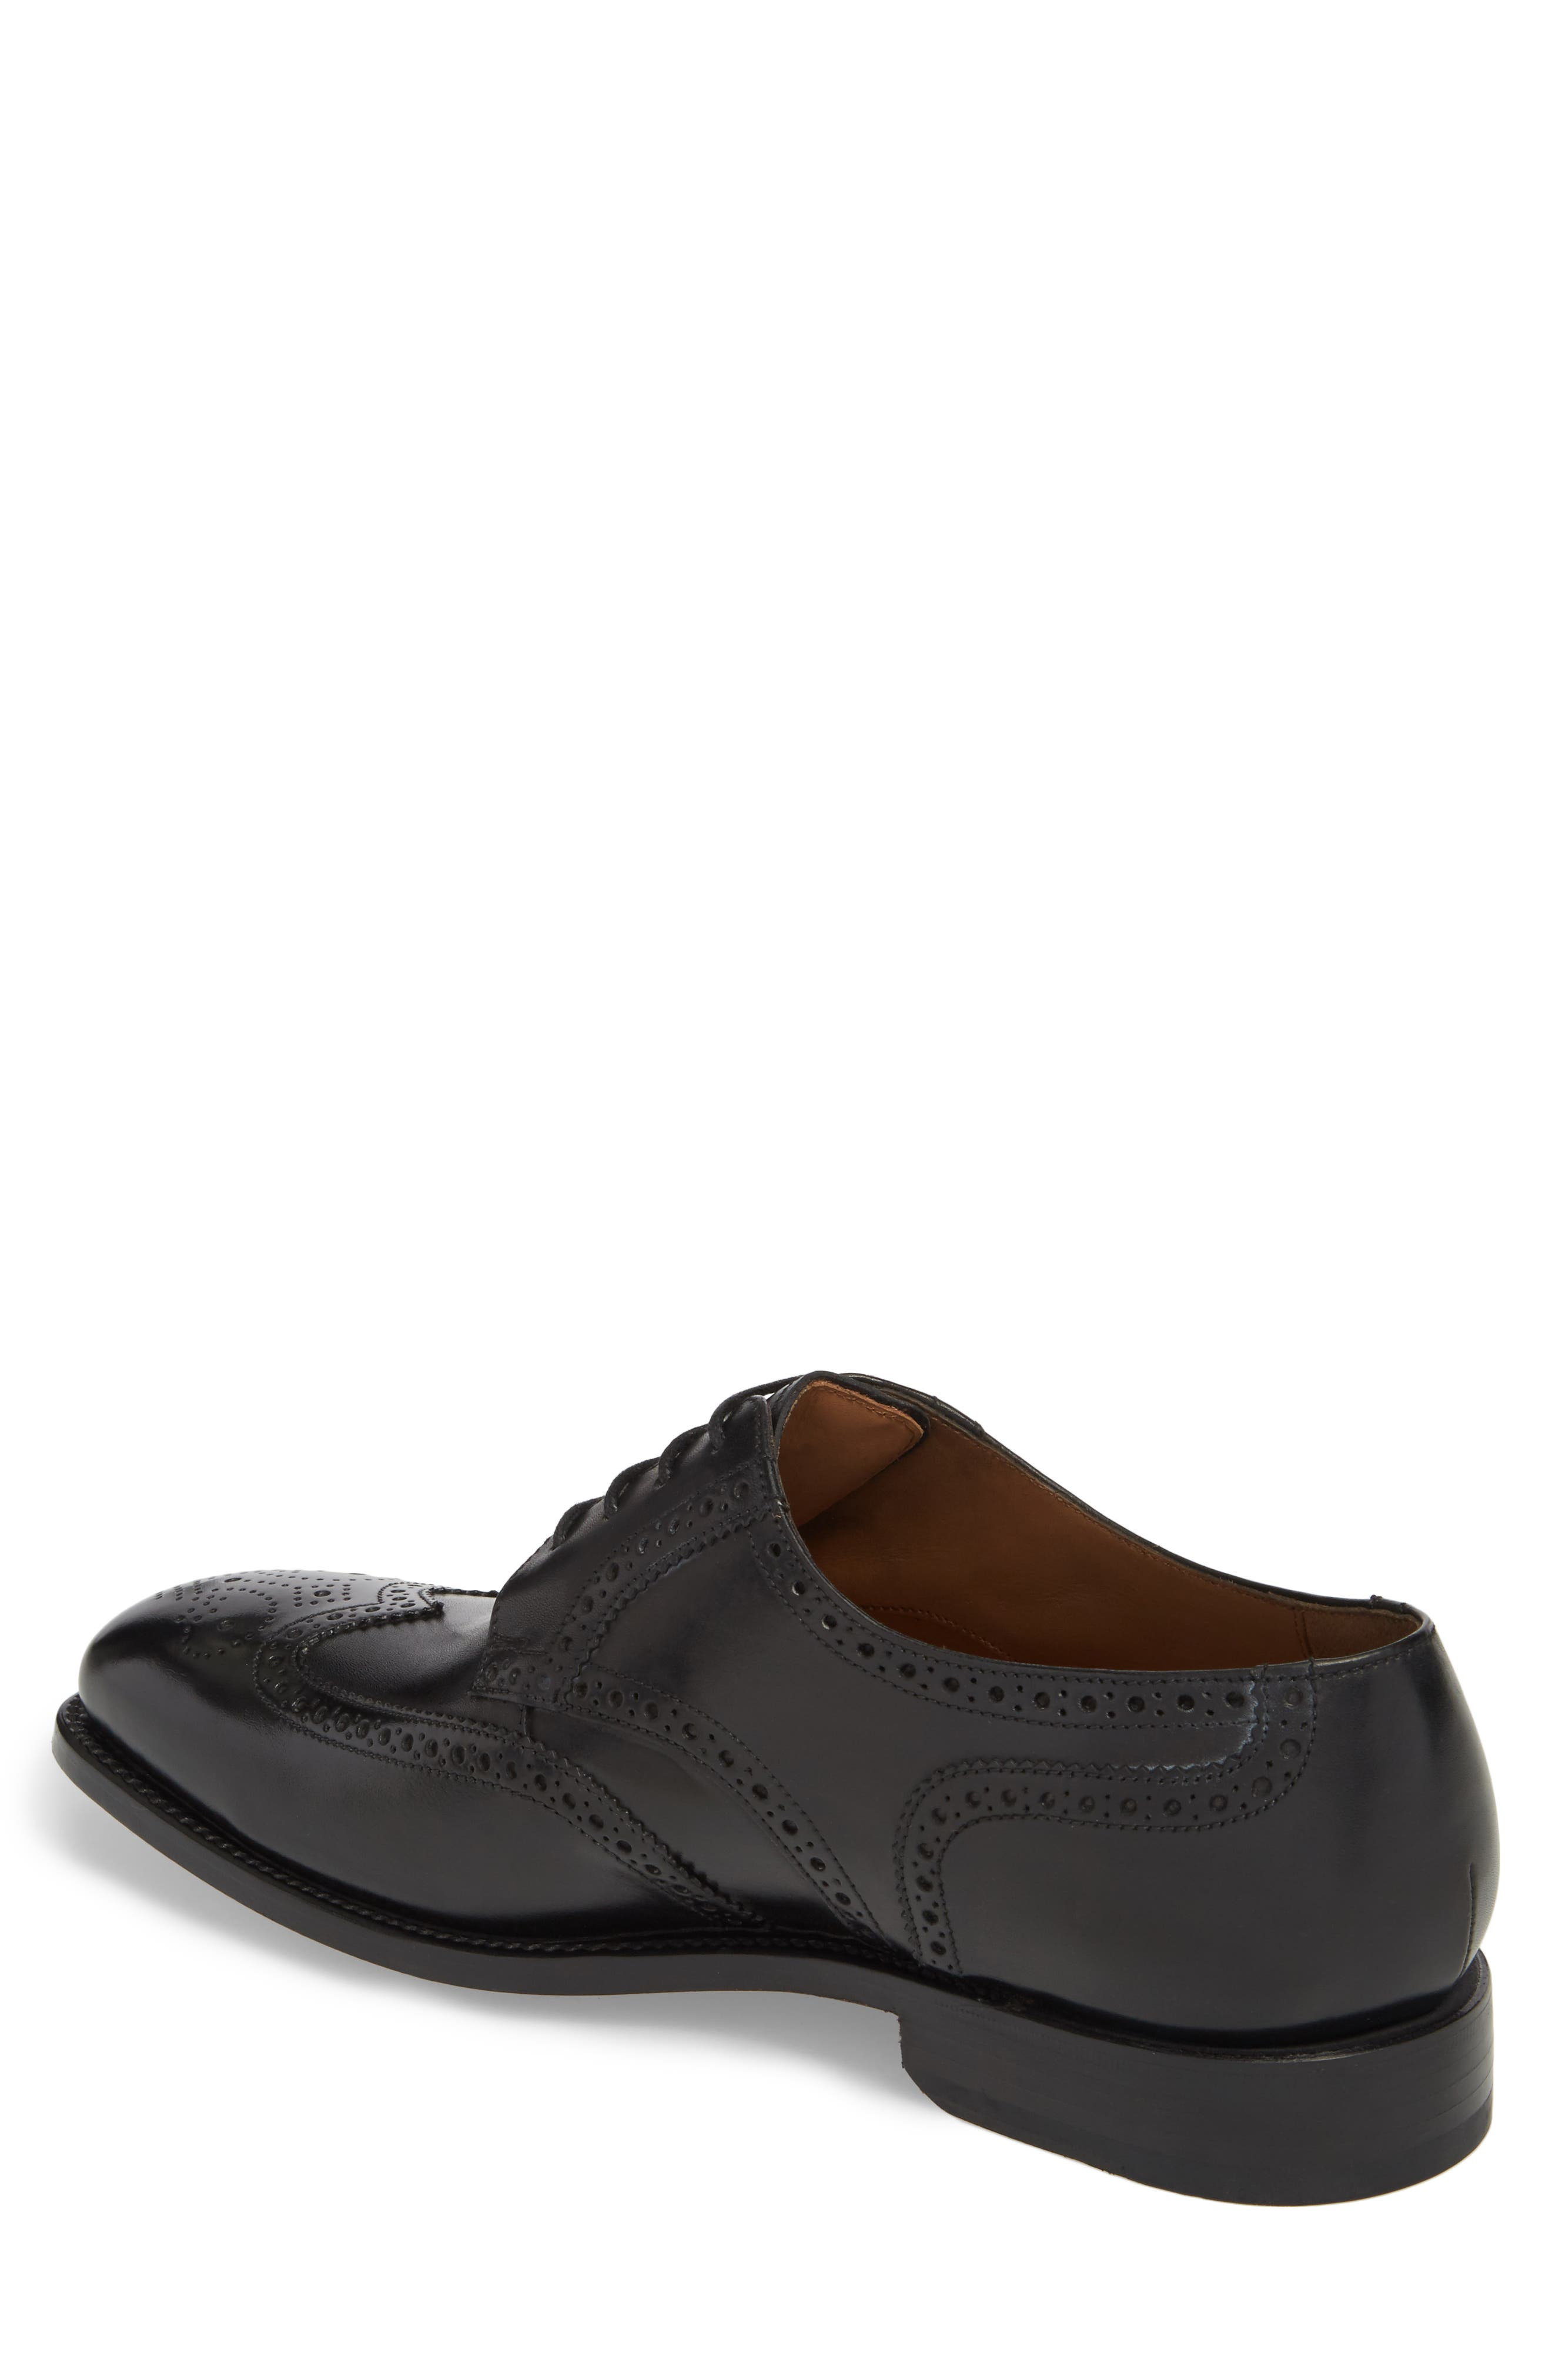 Cavallo Wingtip,                             Alternate thumbnail 2, color,                             BLACK LEATHER